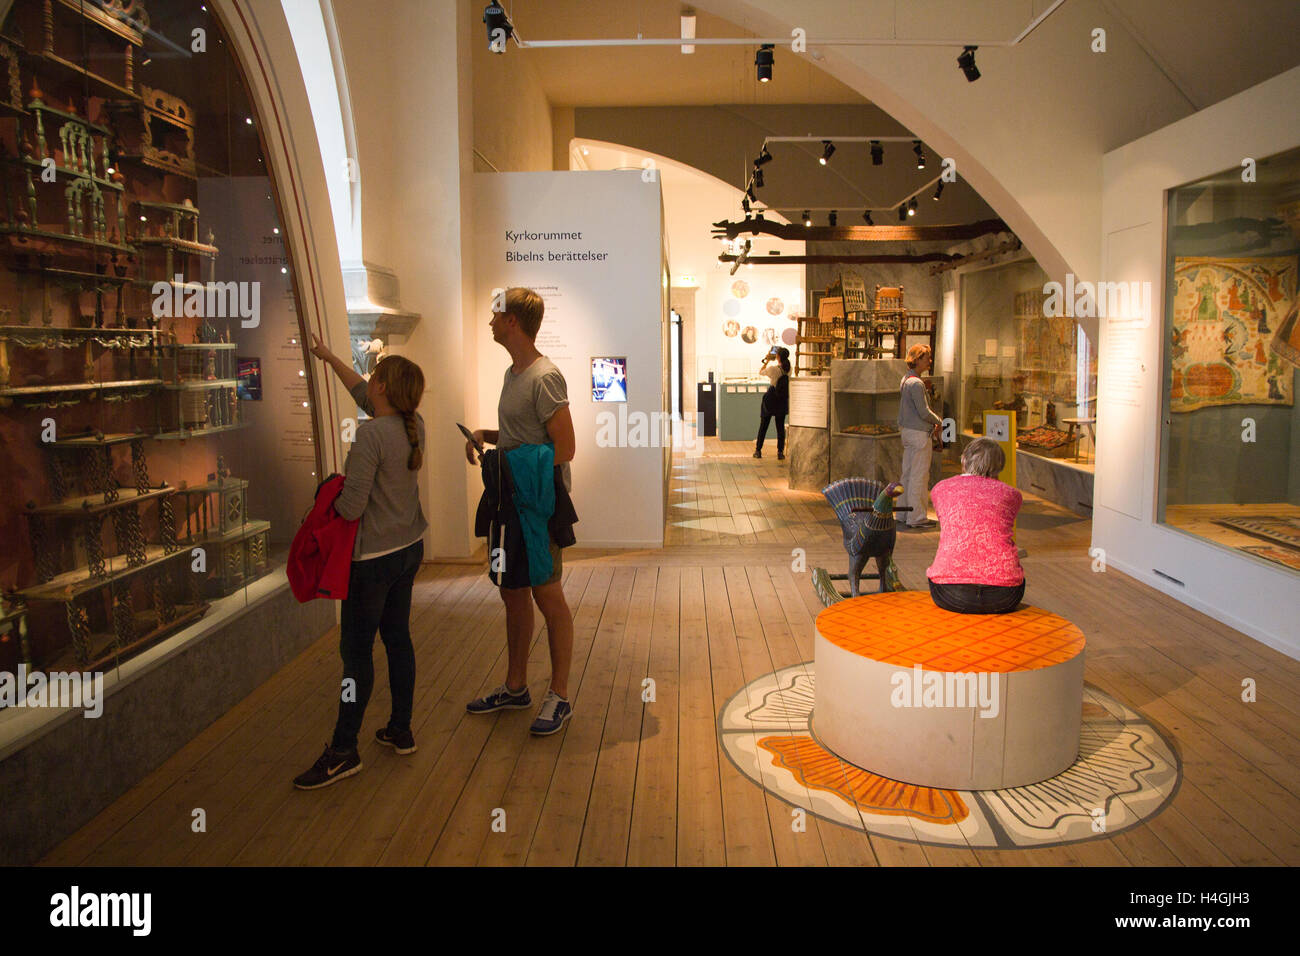 Visitors peruse folk art exhibits at the Nordic Museum in Stockholm, Sweden. - Stock Image